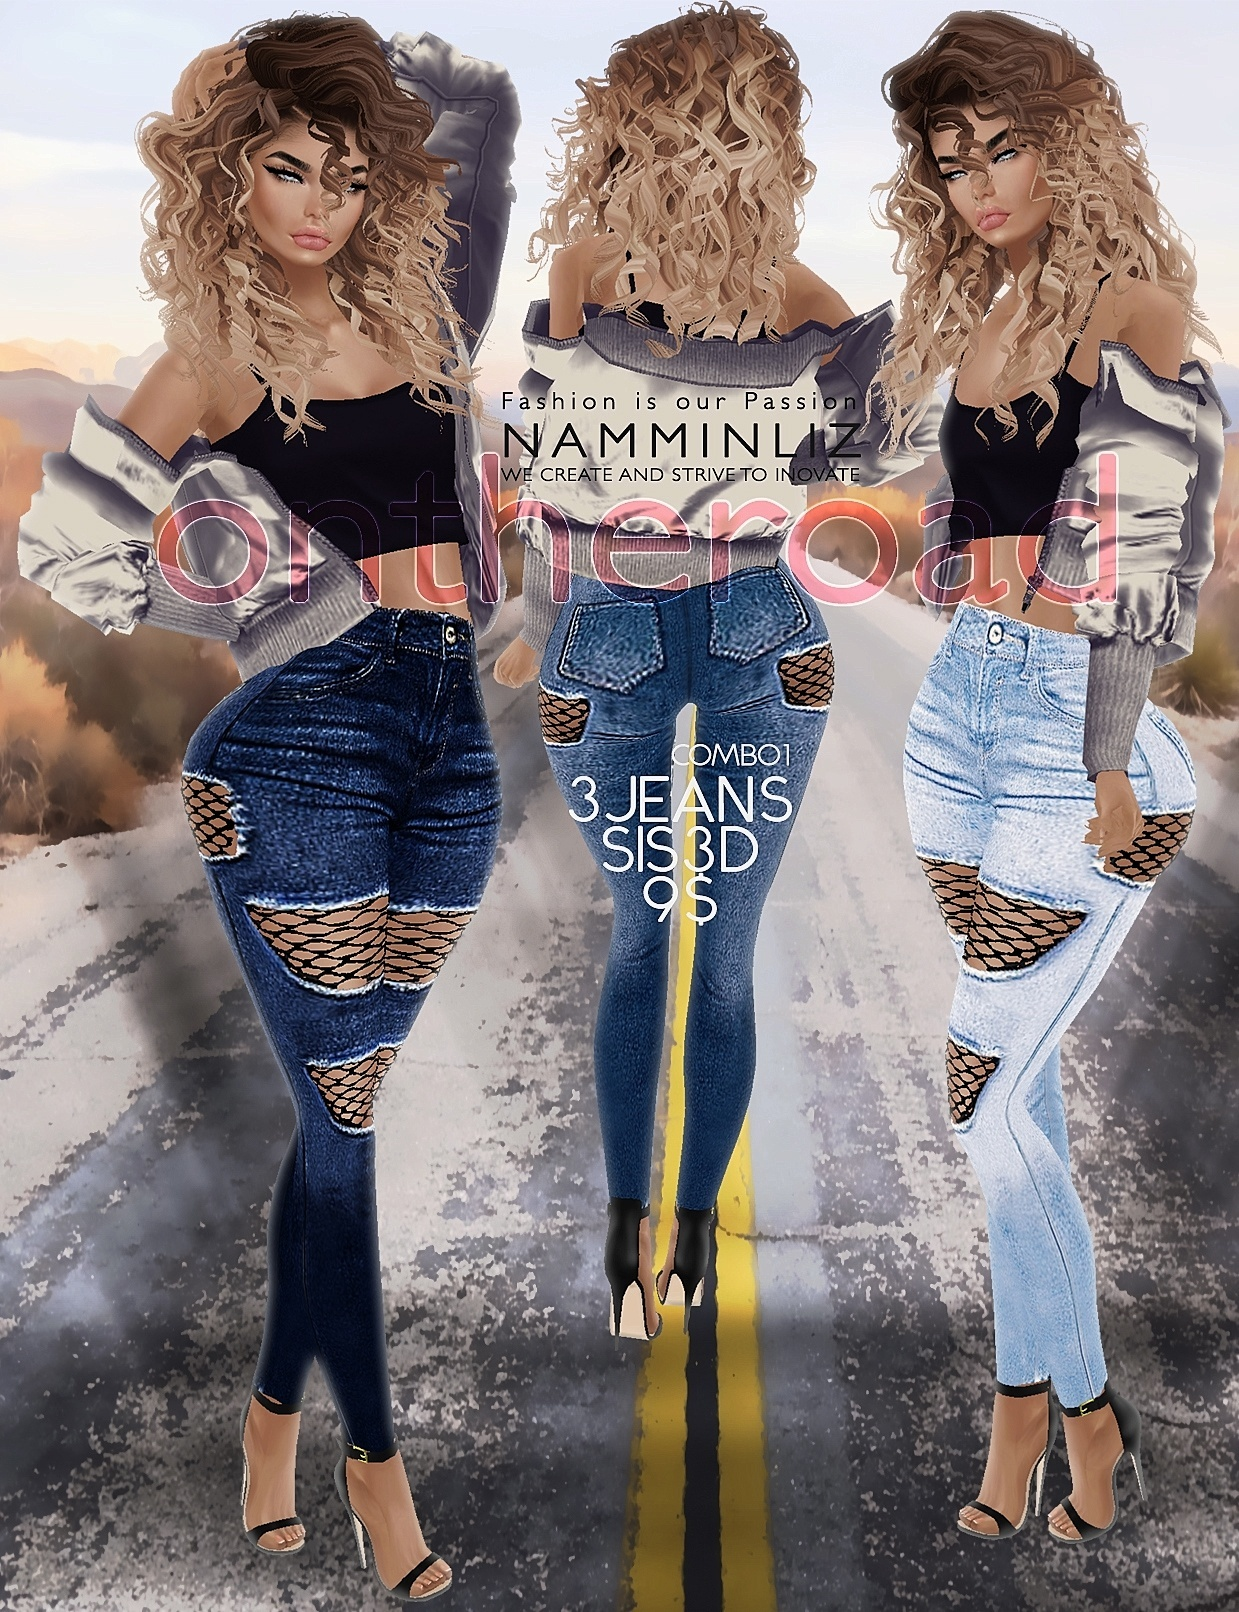 ontheroad full combo / 12Jeans Sis3d PNG RLL RLLS RL